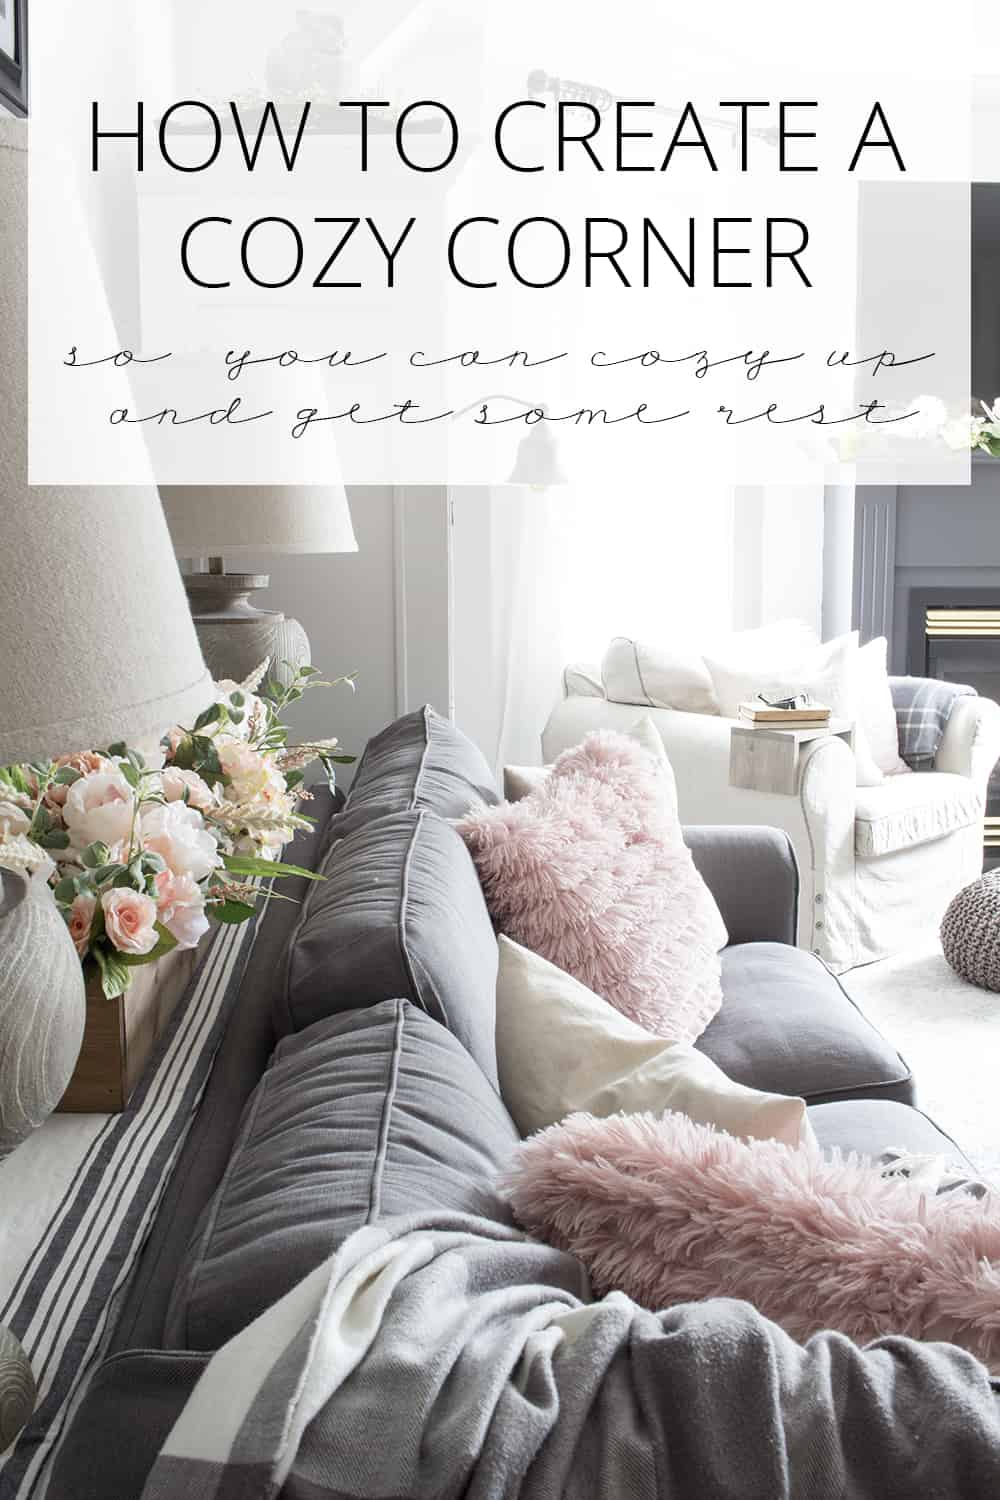 Create A Cozy Corner So You Can Rest